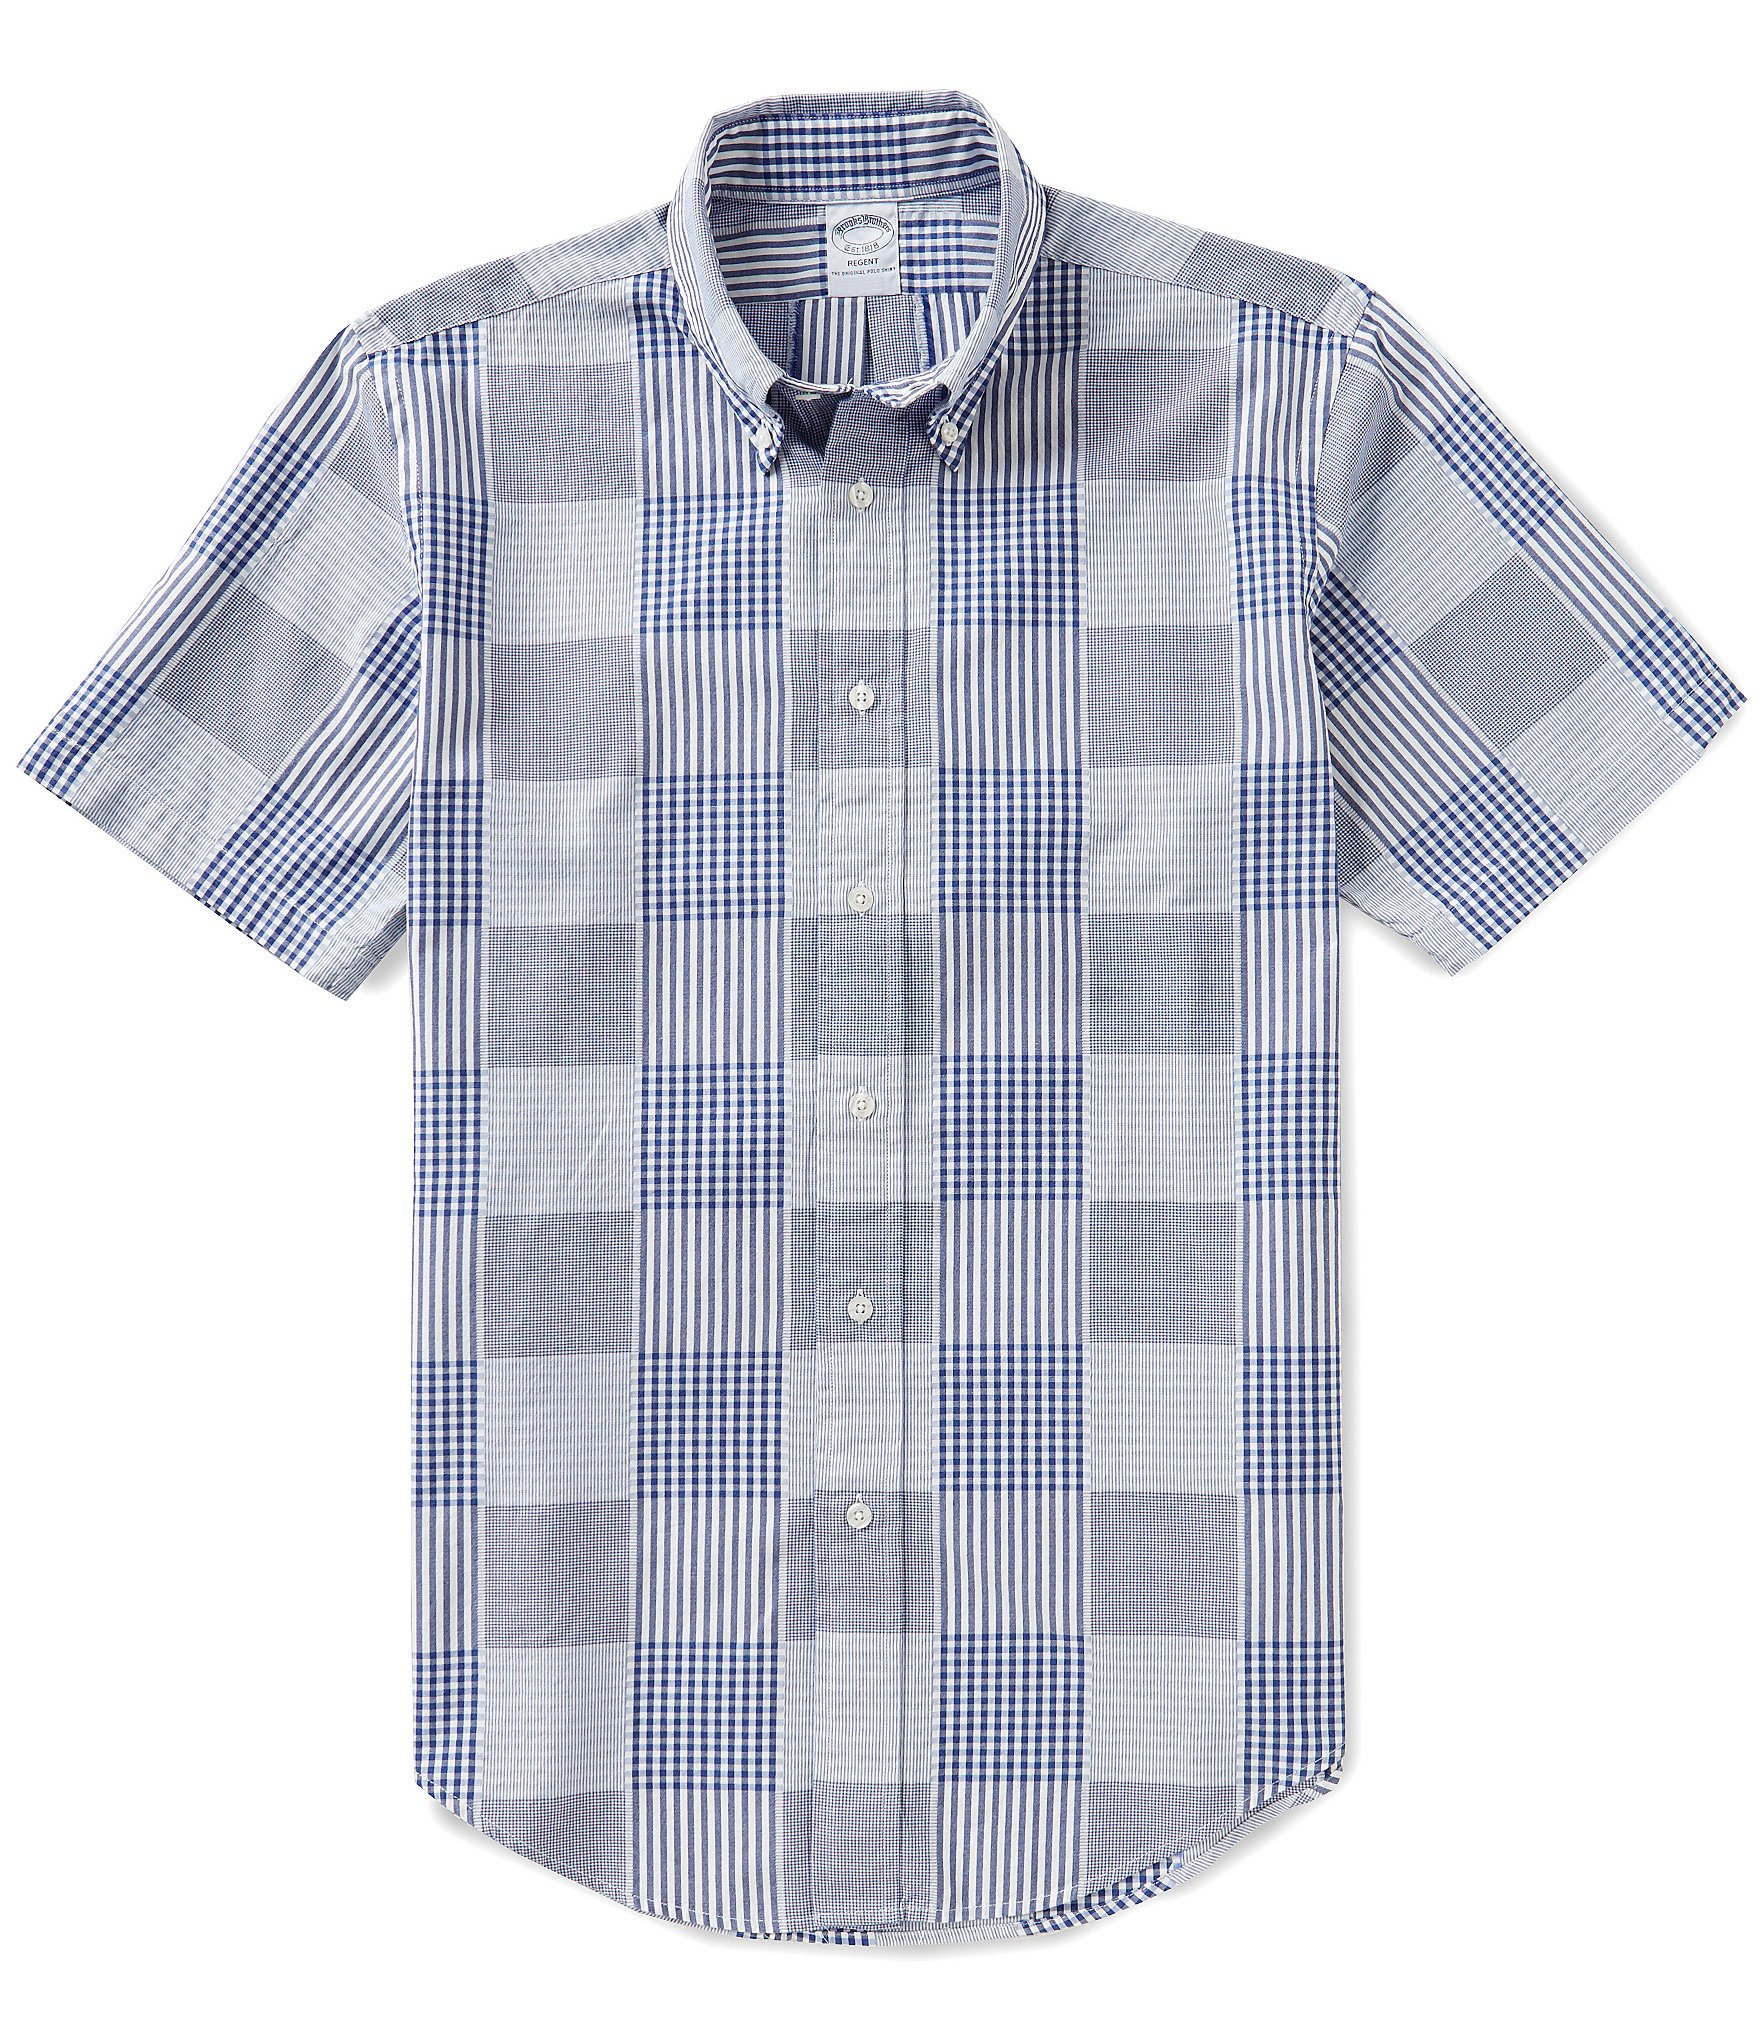 Brooks brothers patchwork slim fit short sleeve woven for Brooks brothers shirt size guide